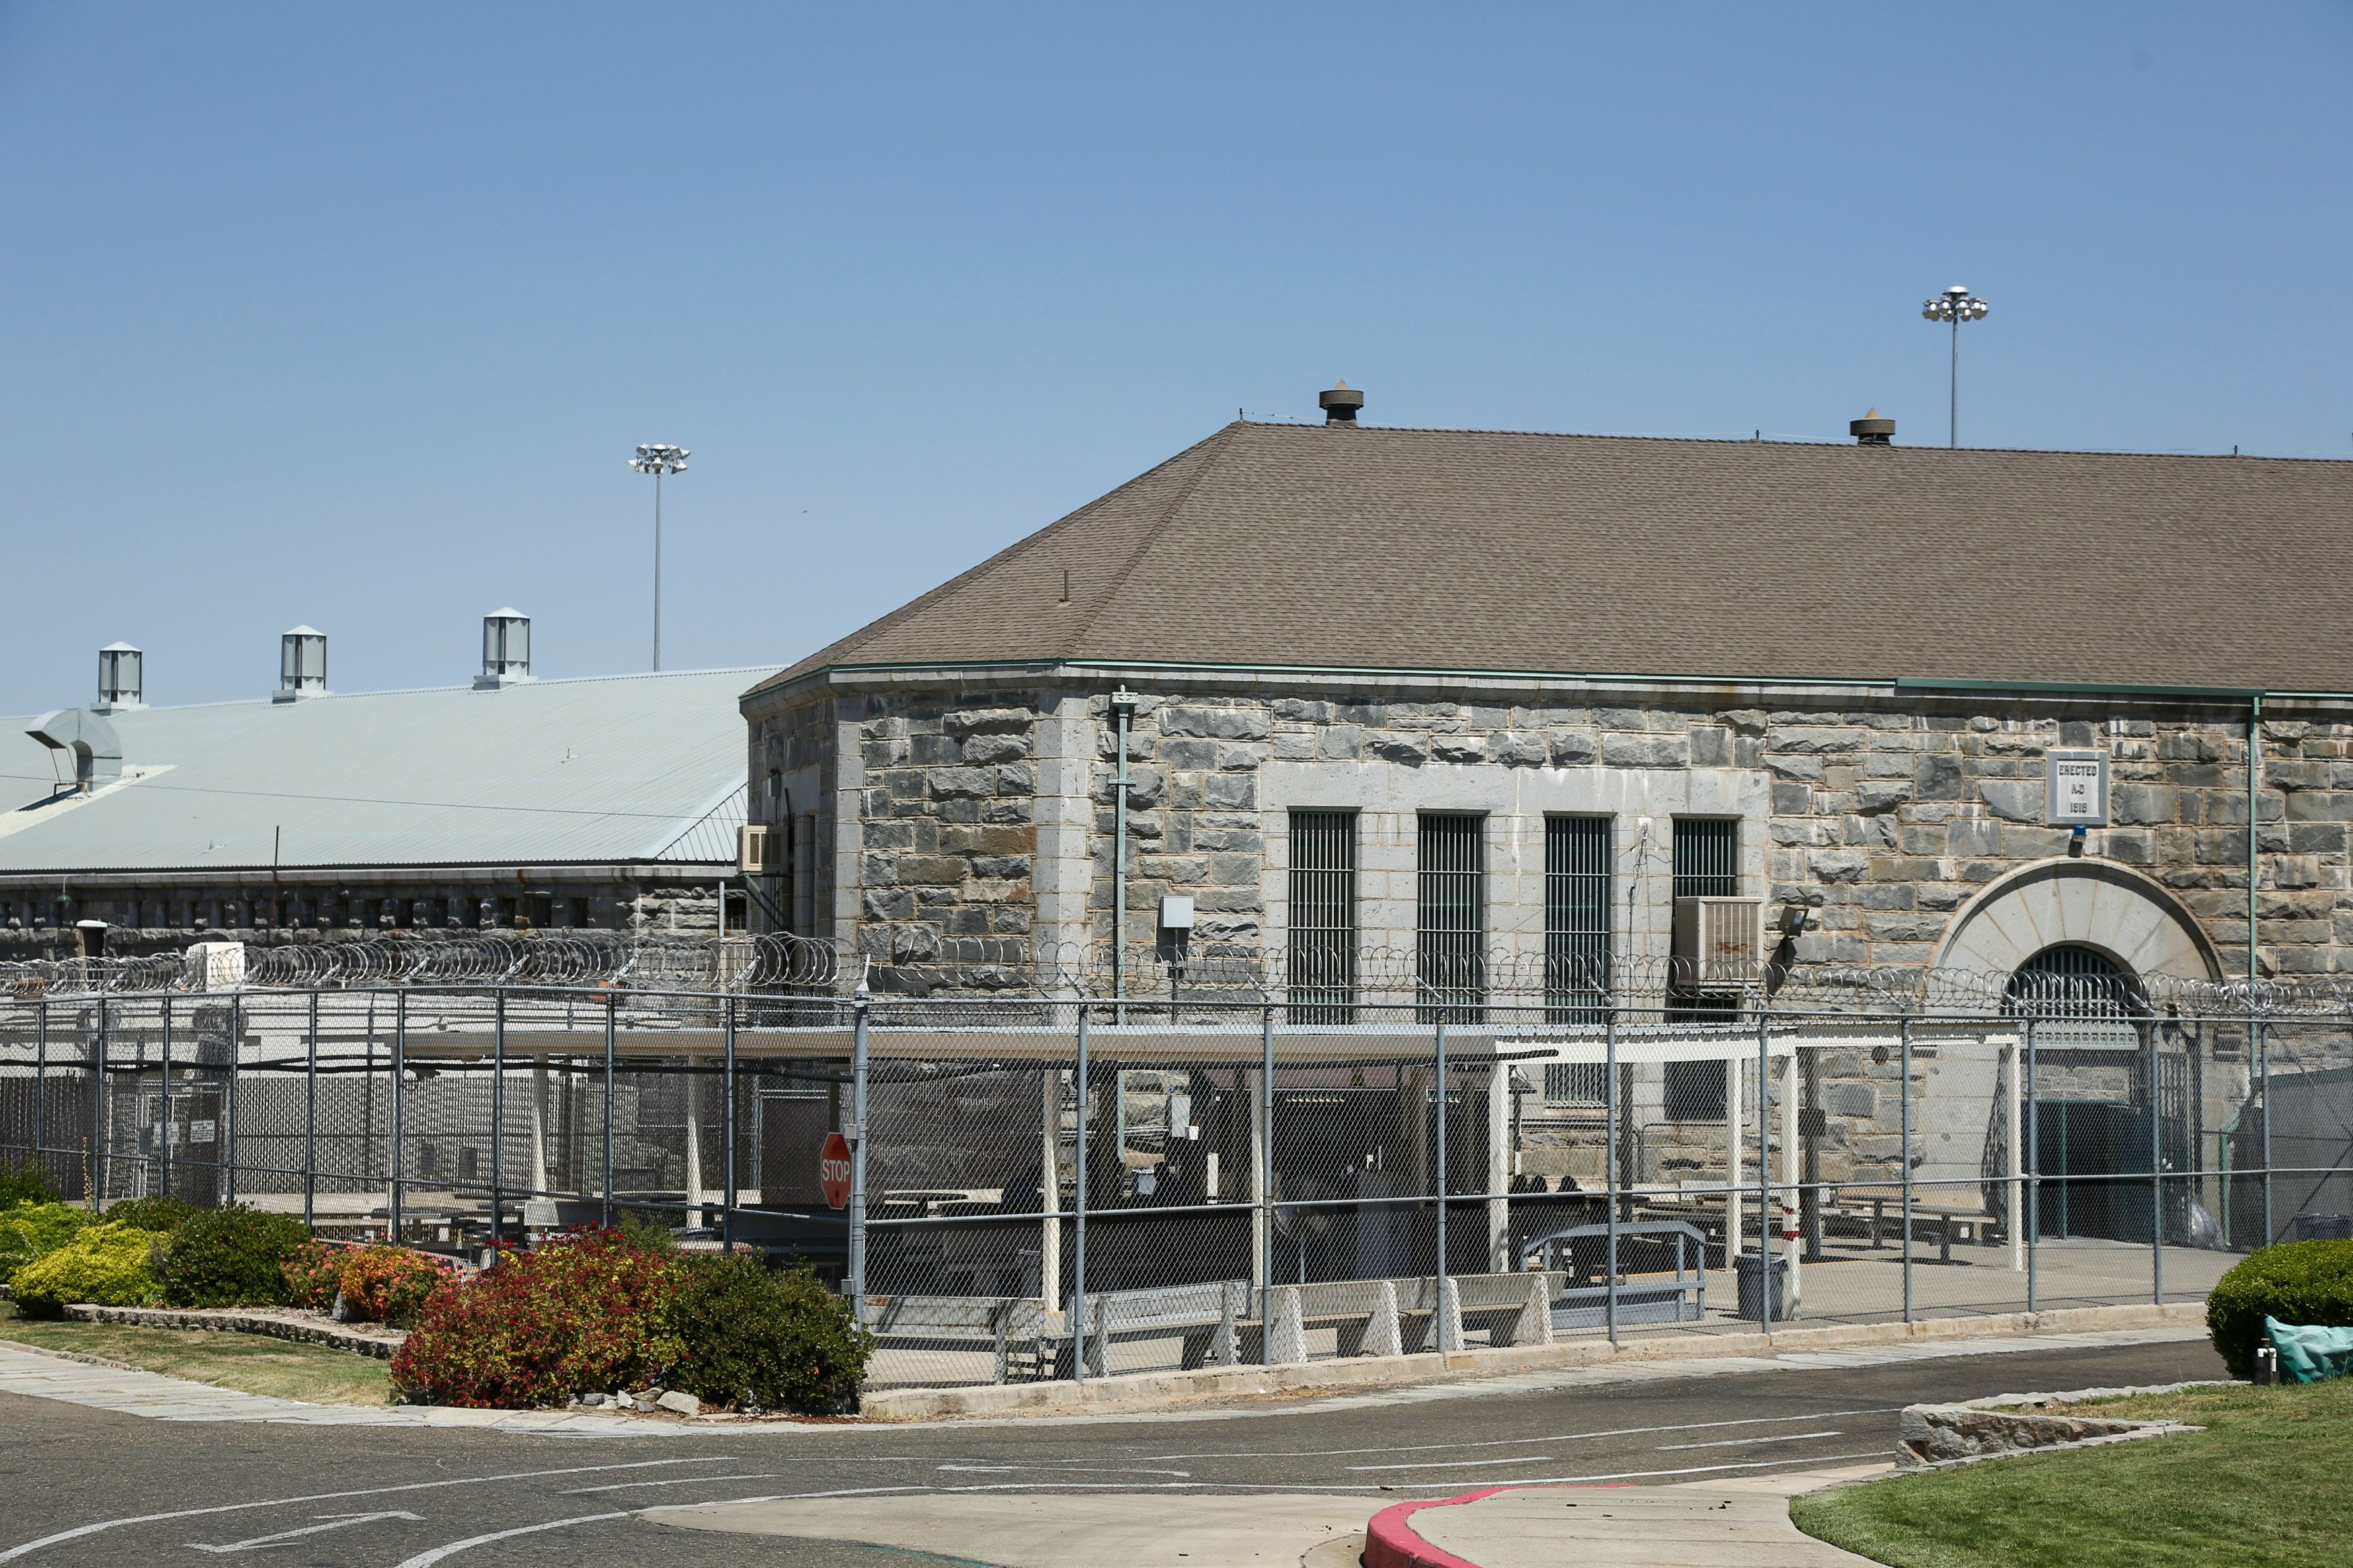 Folsom State Prison is pictured in Folsom, California in this July 26, 2014 photo. One inmate was killed and numerous others were injured in a disturbance that broke out on August 12, 2015 afternoon at a prison outside Sacramento, officials said.   REUTERS/Elijah Nouvelage